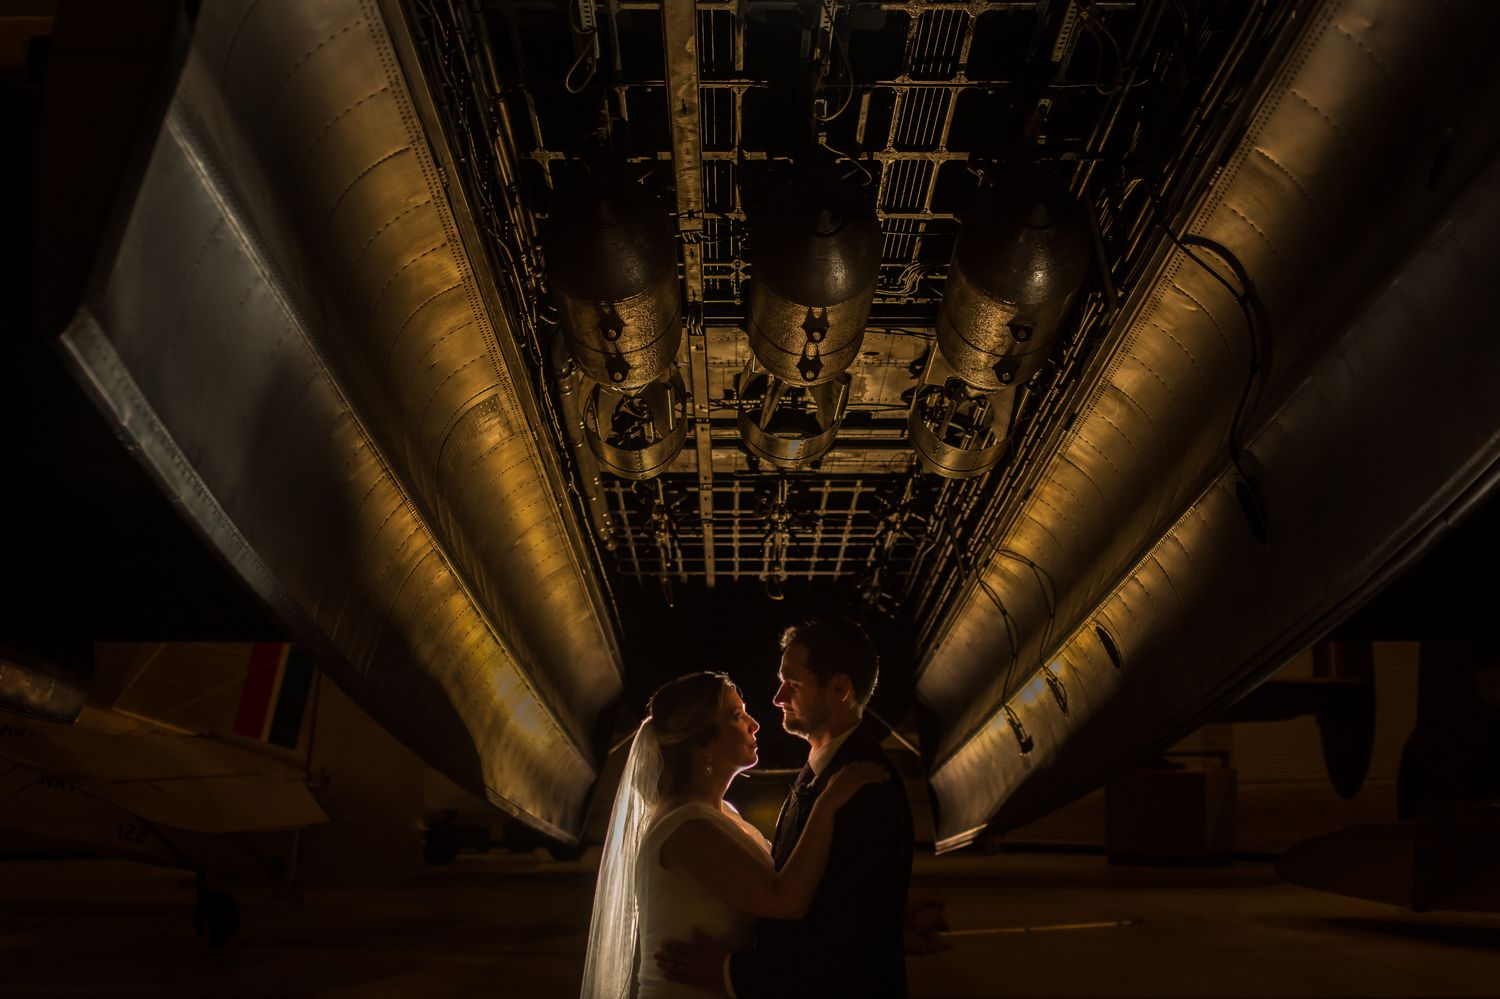 A night time portrait of the bride and groom taken inside the Canadian Aviation and Space Museum in downtown Ottawa